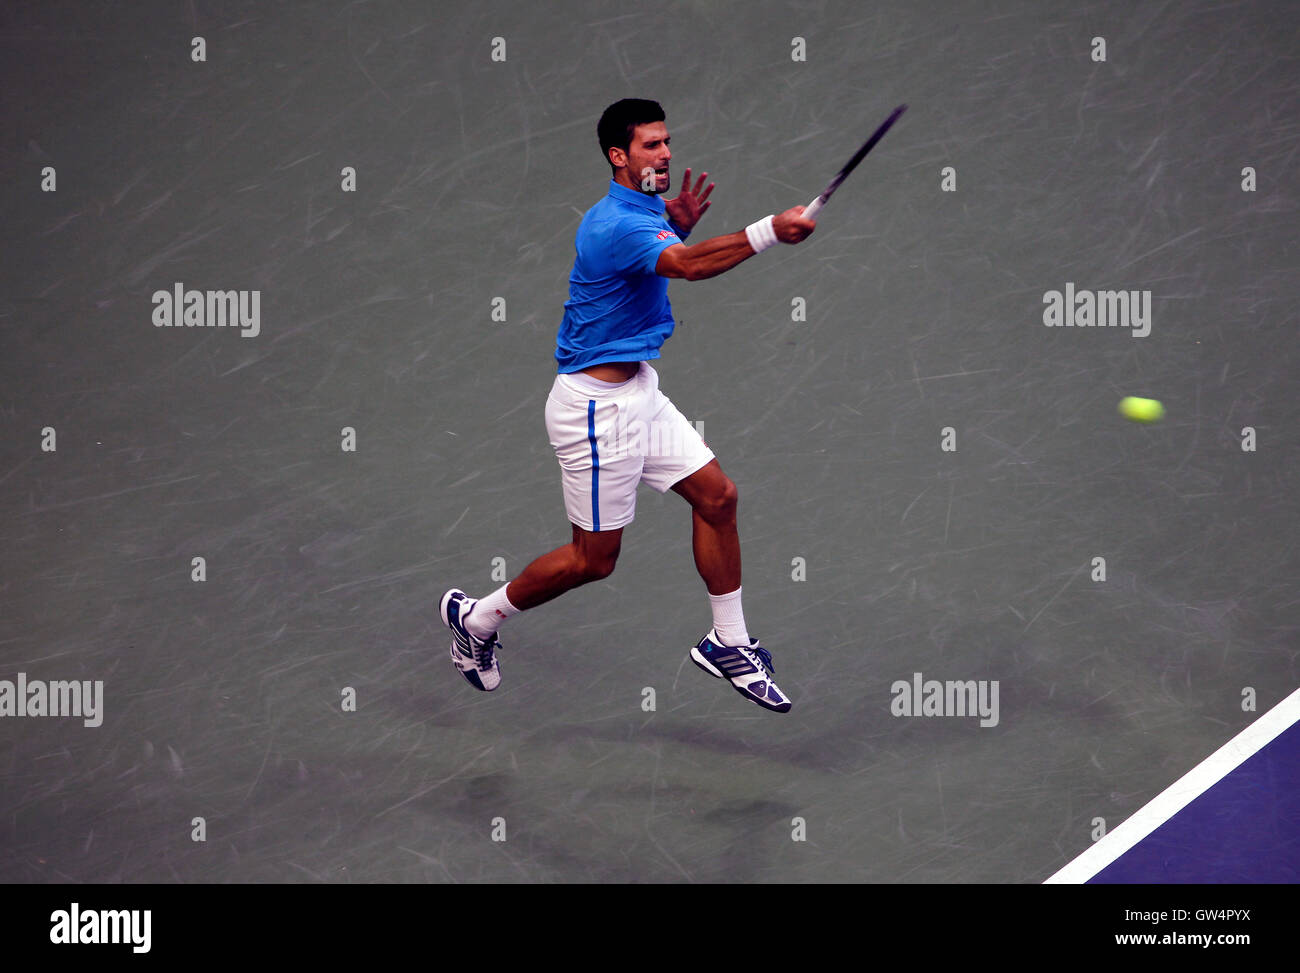 New York, United States. 11th Sep, 2016. Novak Djokovic strikes a forehand during the United States Open Tennis - Stock Image